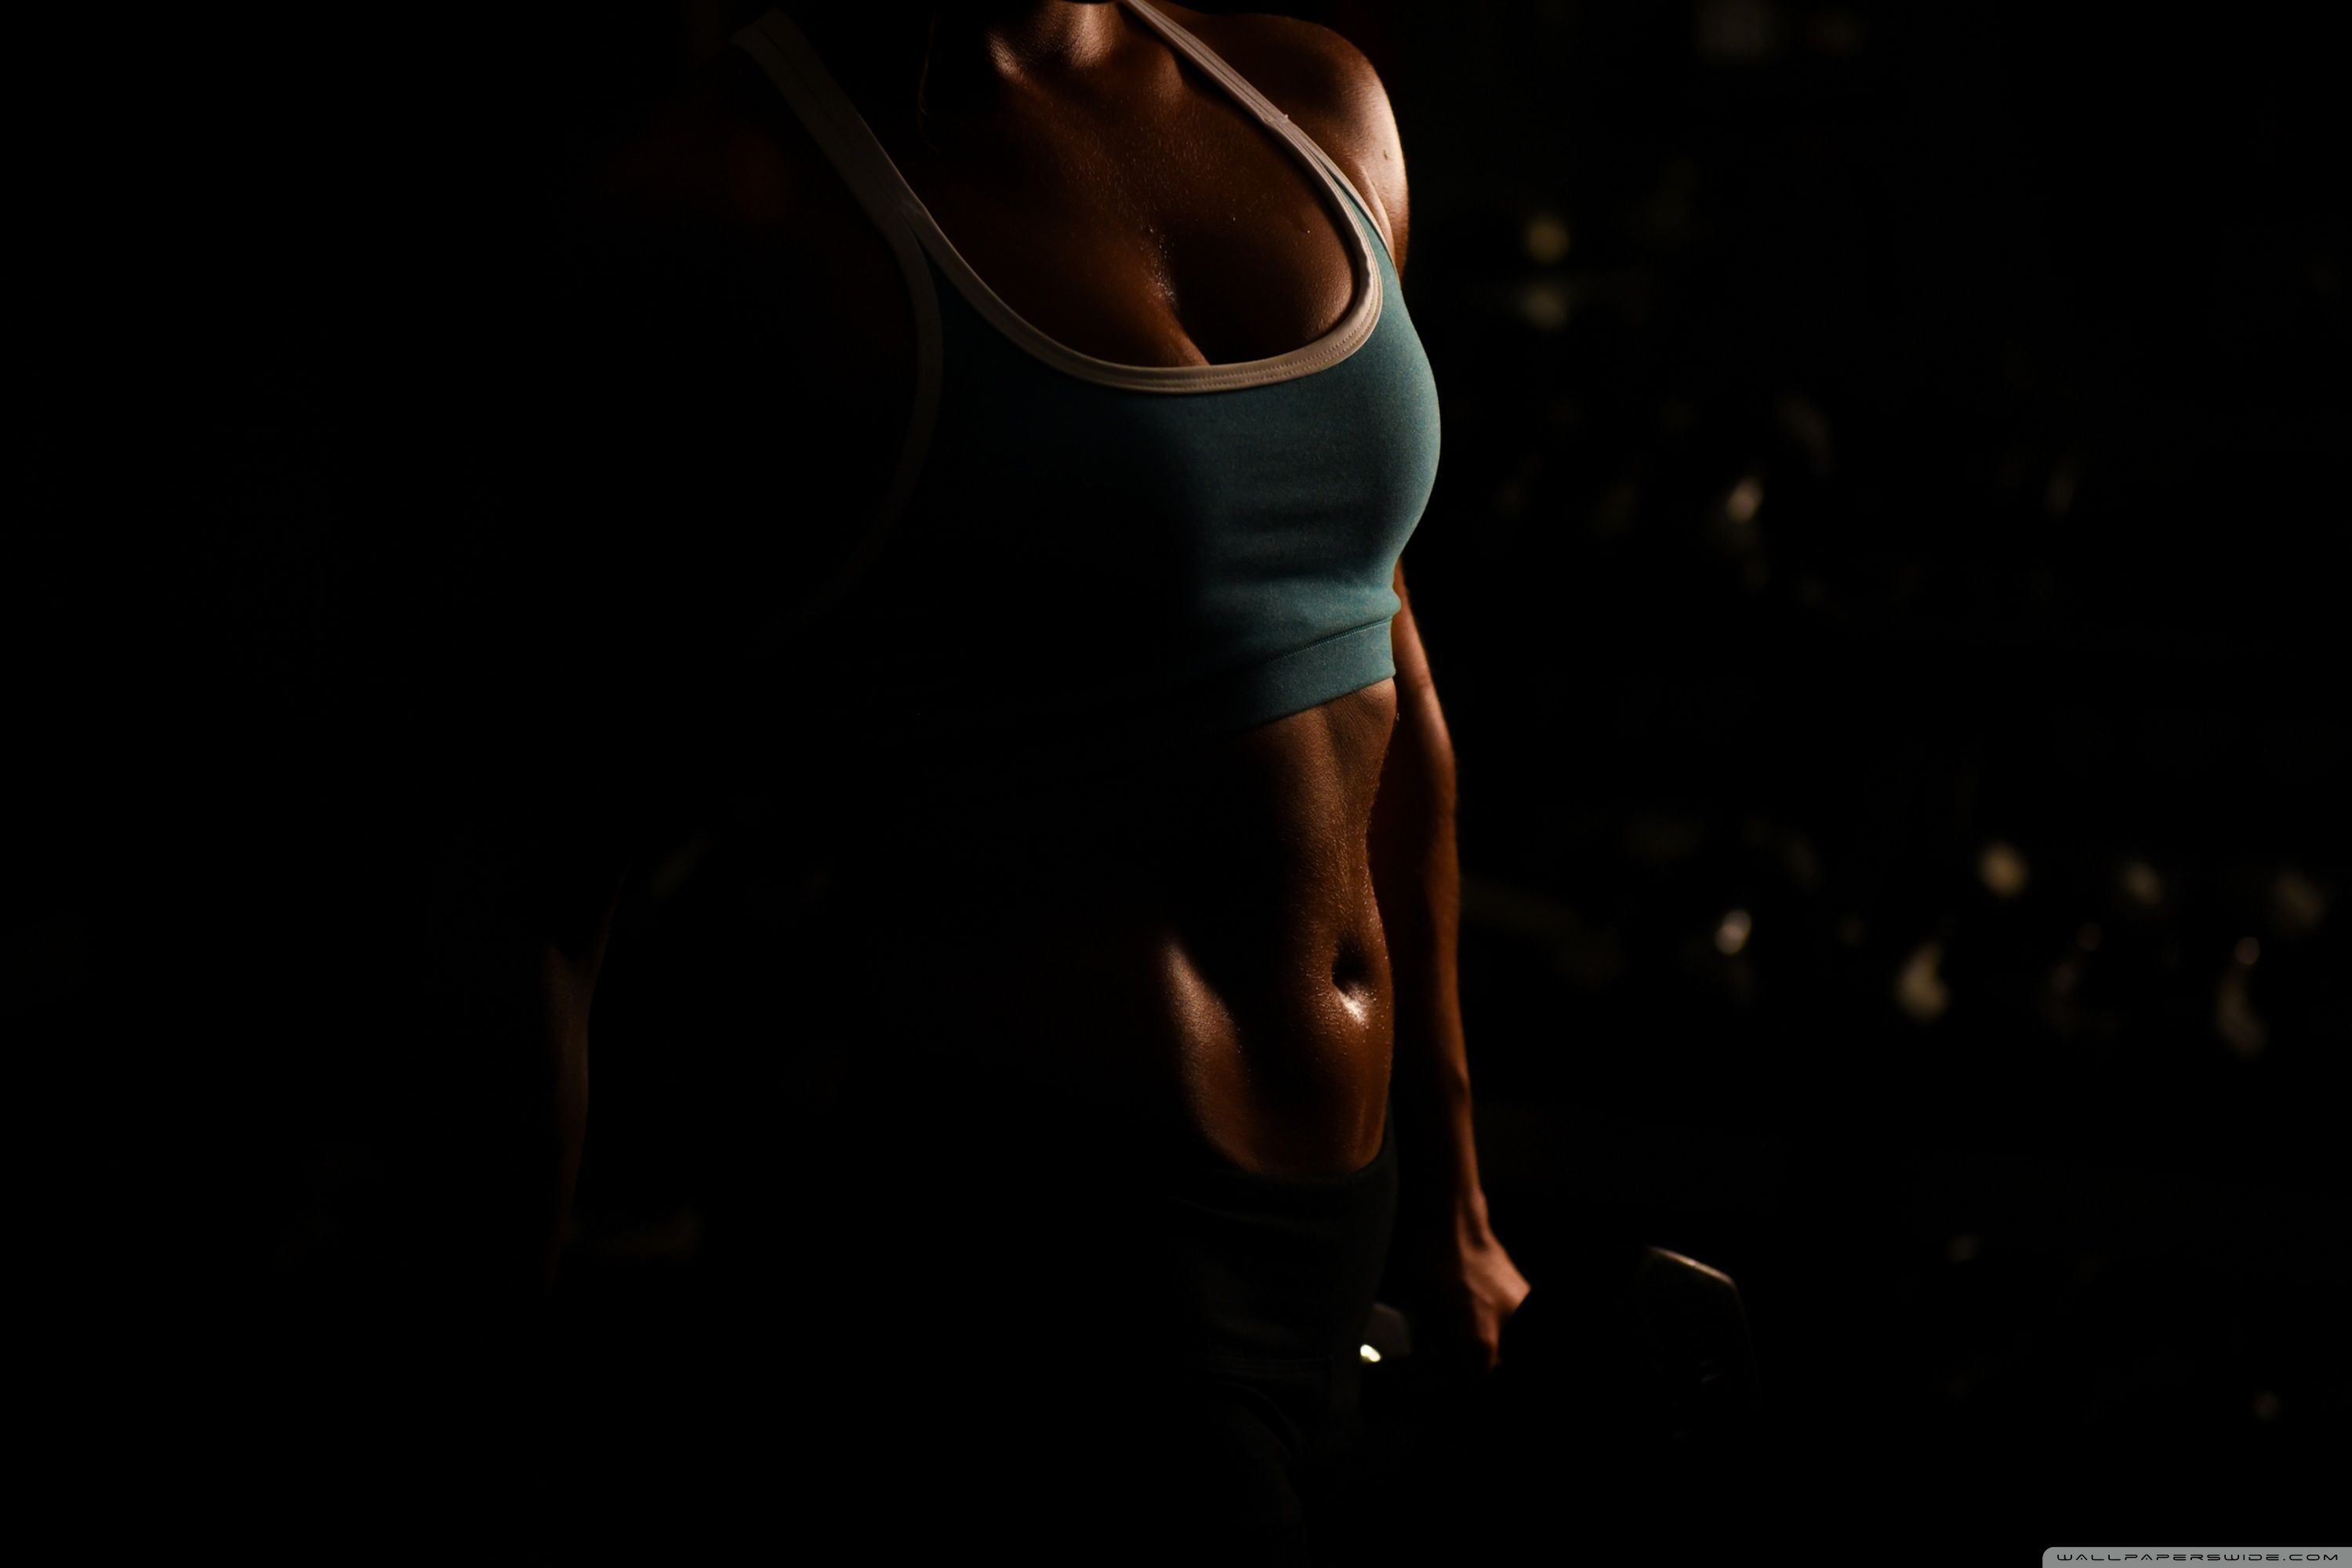 4k fitness wallpapers top free 4k fitness backgrounds - Fitness wallpapers for desktop ...